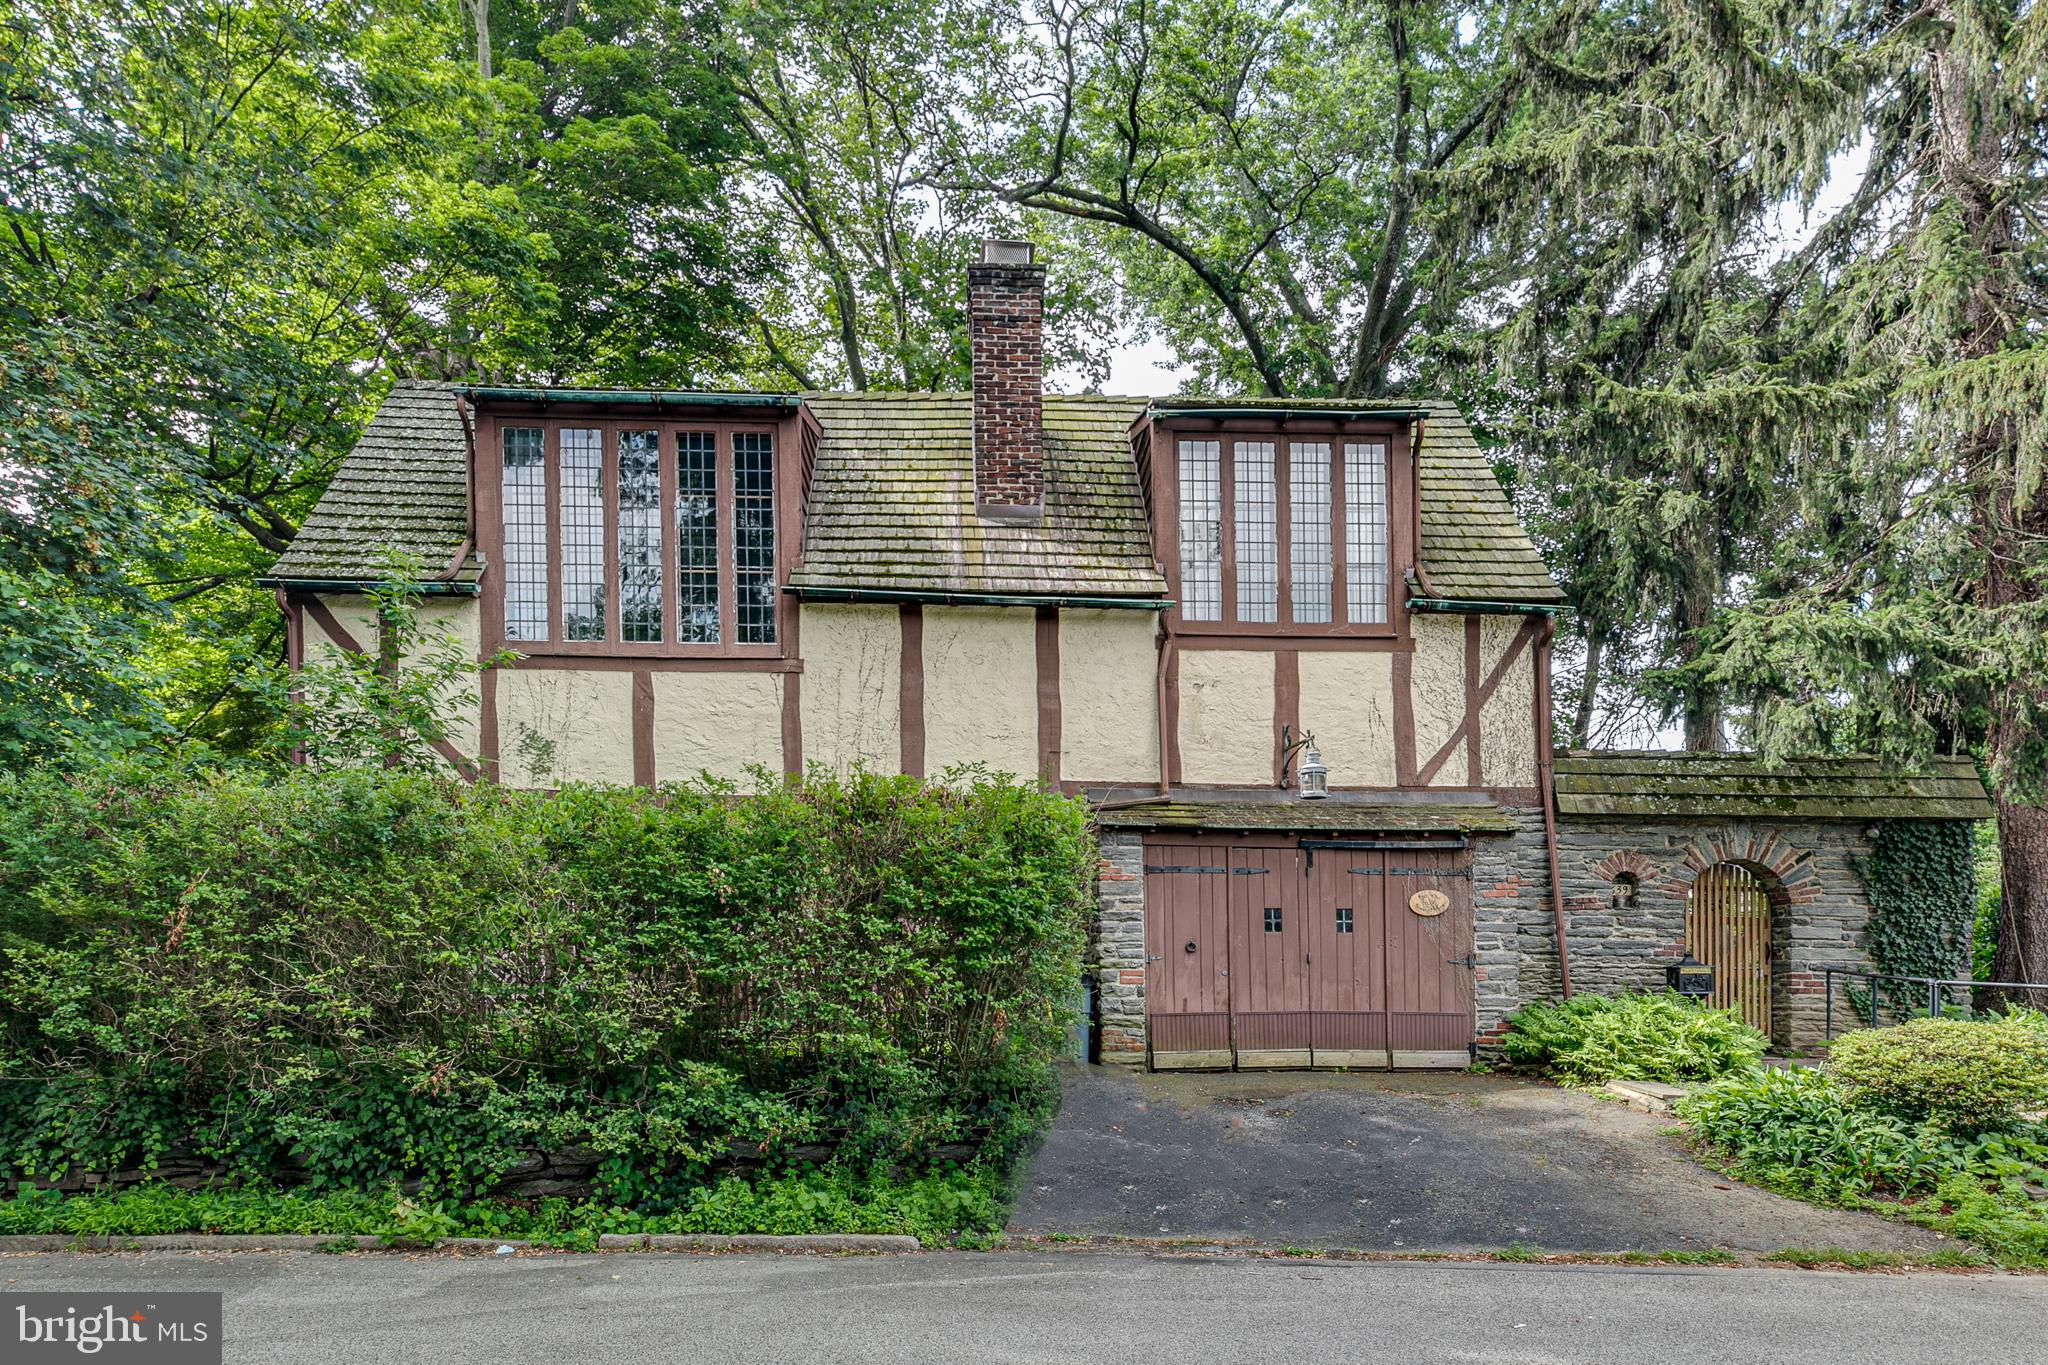 FOR SALE: Rarely offered single Tudor-style home in historic English Village in Wynnewood, Lower Merion Township. 2,331 sq. ft. 4 bedrooms, 1 full bath and 1 half bath home with a large back yard. Sun-filled living room and dining area. Two large bedrooms with cathedral ceilings, and two additionally nicely sized bedrooms. Large kitchen with slate tile floor and stainless steel appliances. Gas cooking. Dining room features exposed beam and door to outside patio where you can view the pond.  Basement features large separate wine cellar, as well as washer and dryer. Attached one car garage and extra parking space outside of the garage. Convenient to Wynnewood Shopping Center, Suburban Square and R5 train station.